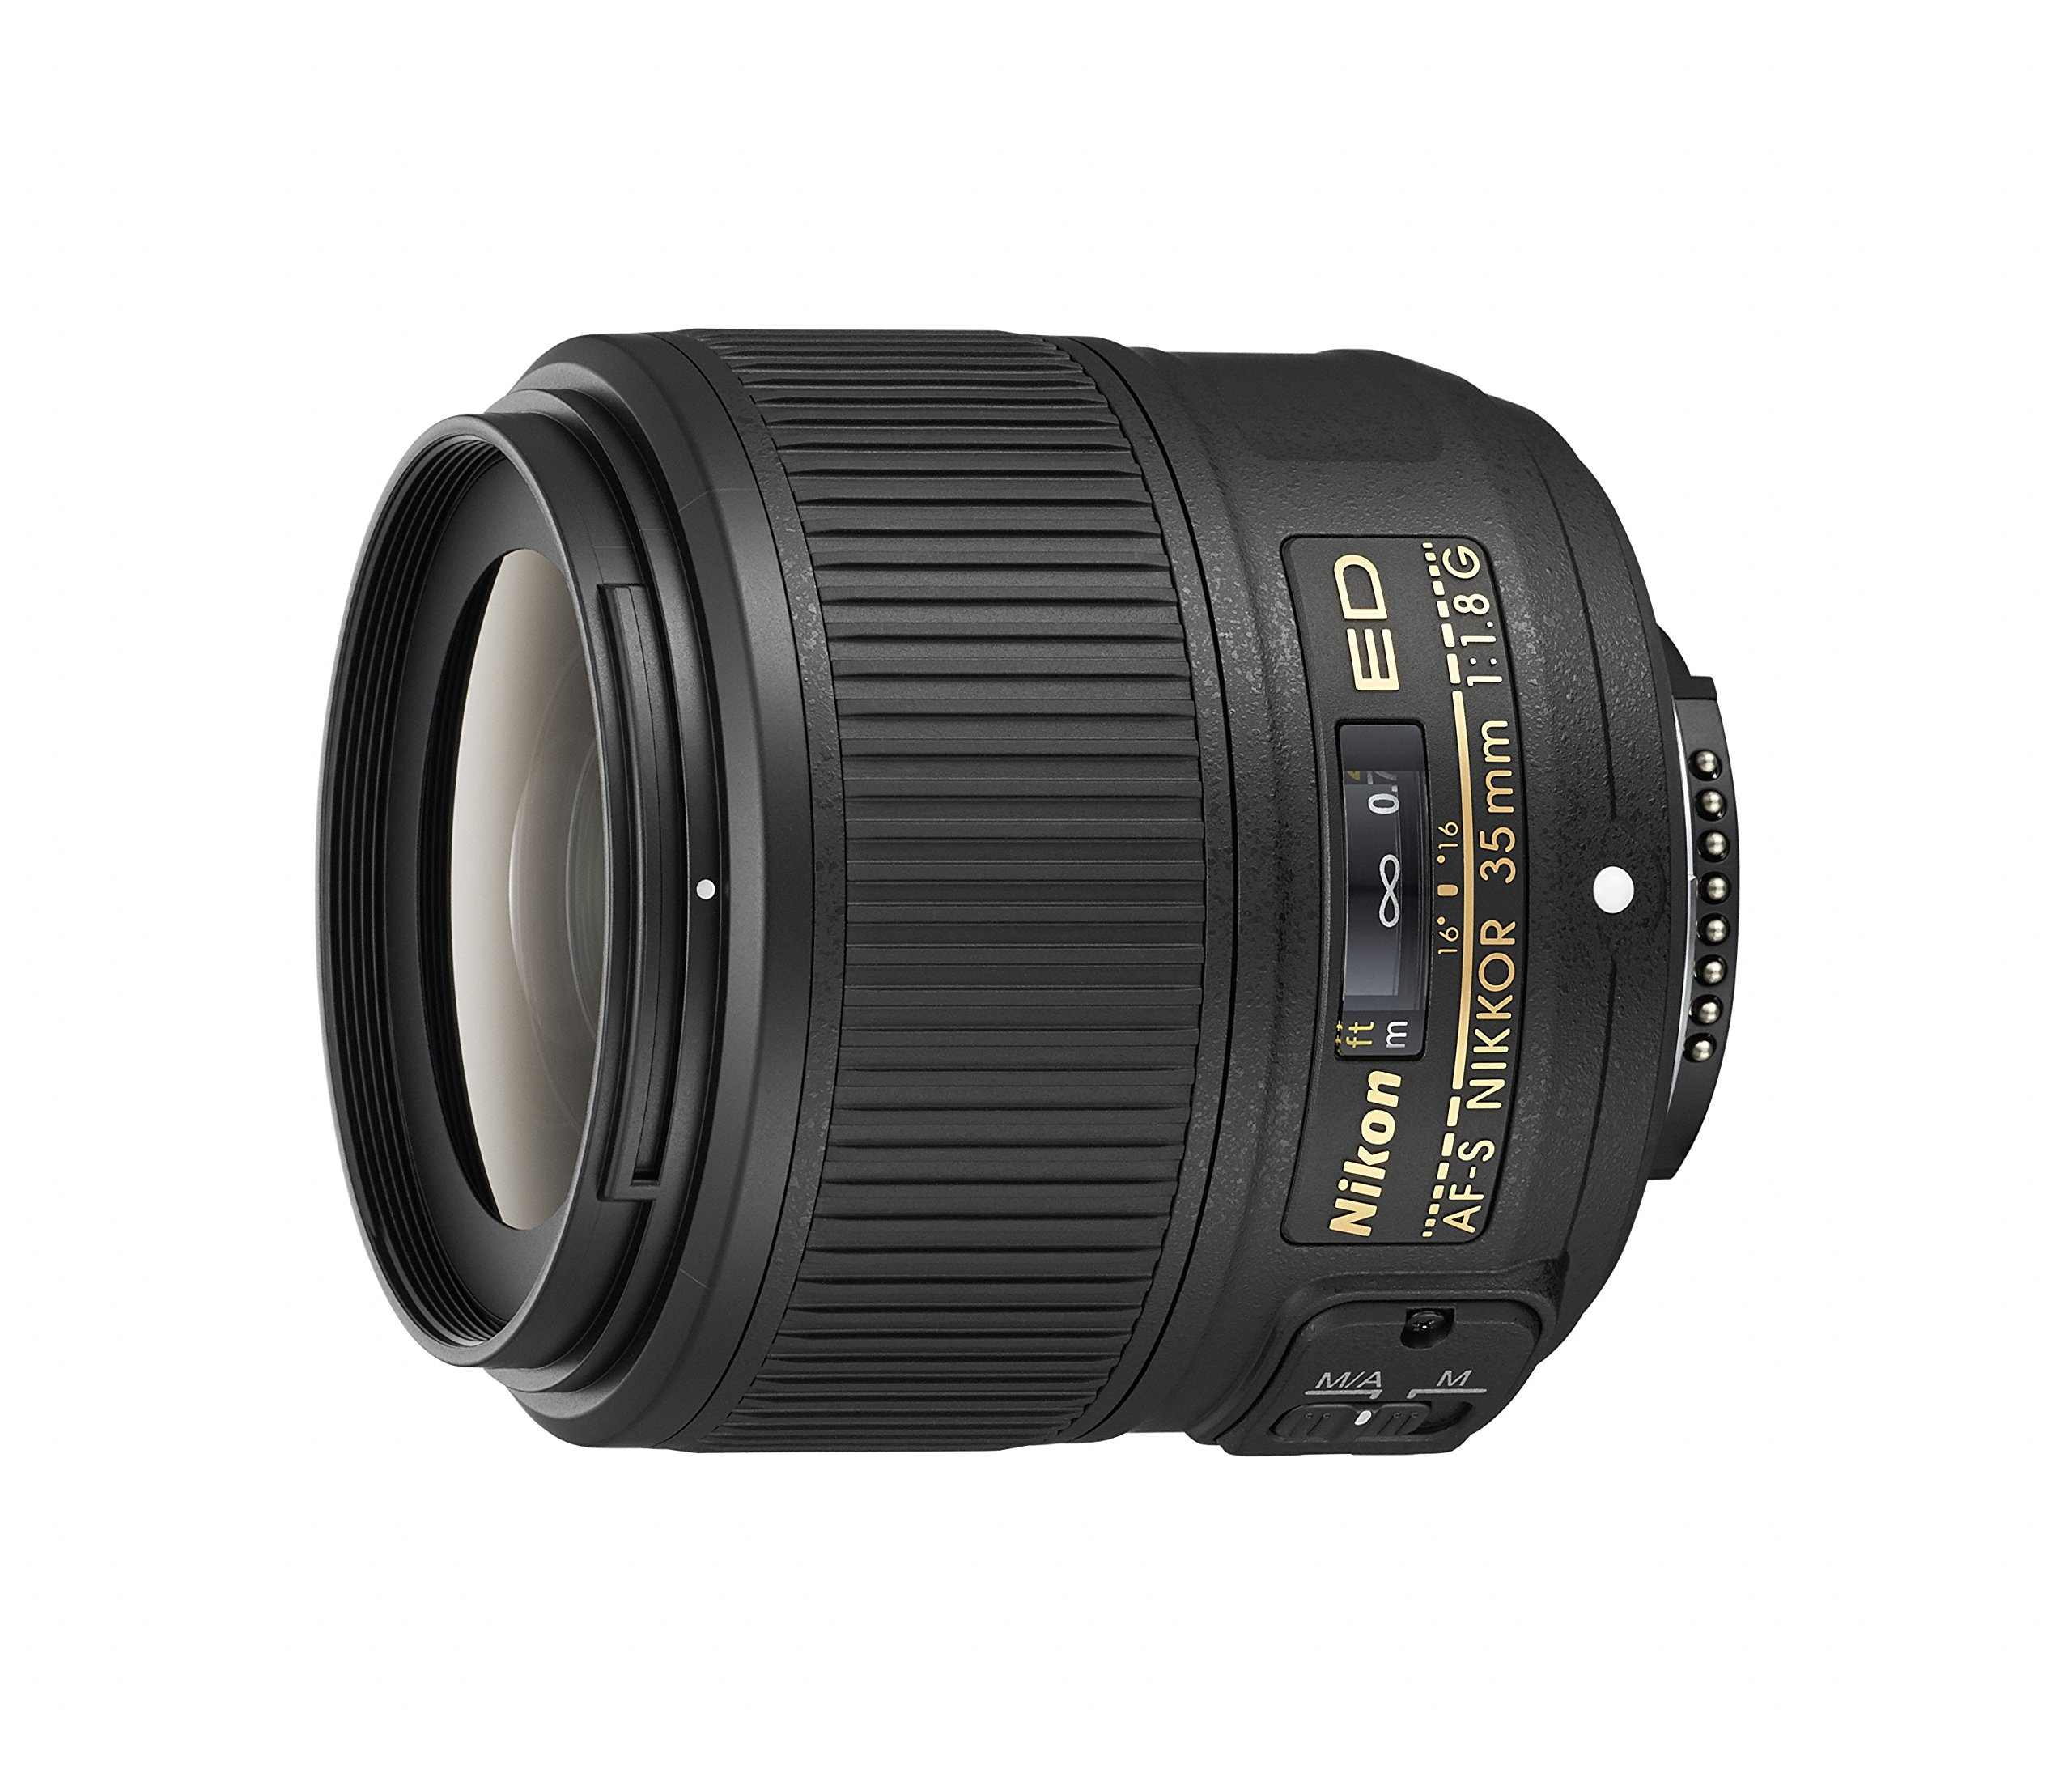 Nikon AF-S NIKKOR 35mm f/1.8G ED Fixed Zoom Lens with Auto Focus for Nikon DSLR Cameras by Nikon